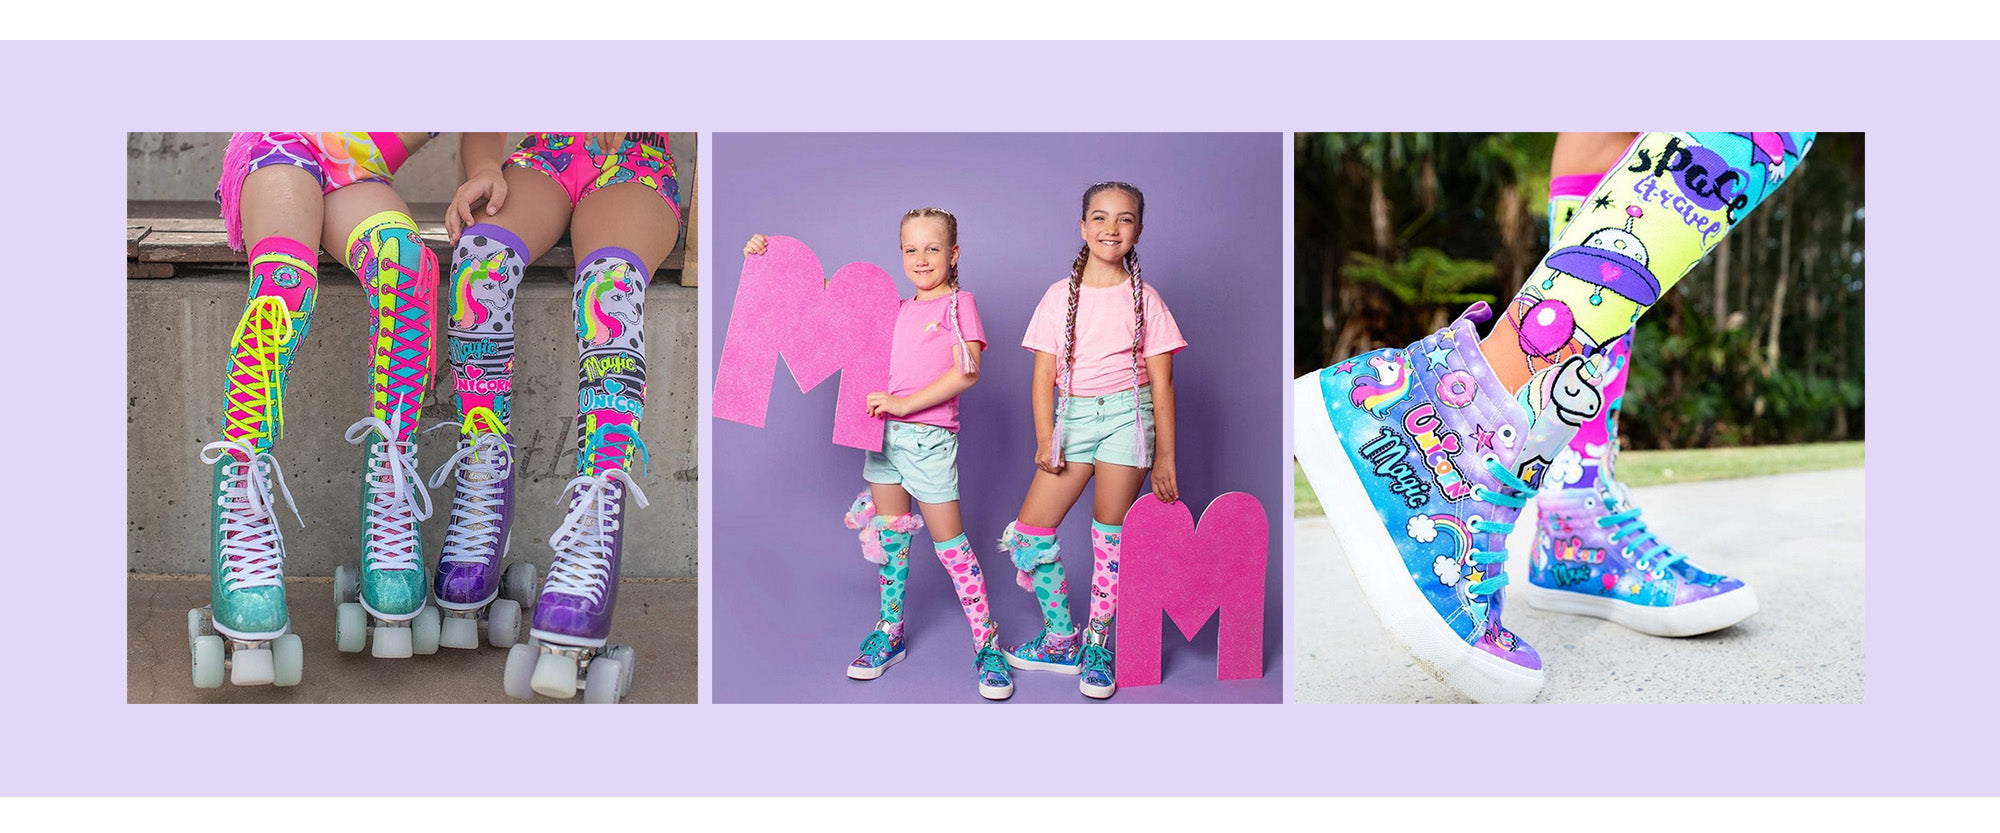 Kids fads come and go but Madmia socks are guaranteed to outlive most! Check out just what all the excitement about and why crazy Madmia socks are the must-have stocking stuffer for Christmas 2020!